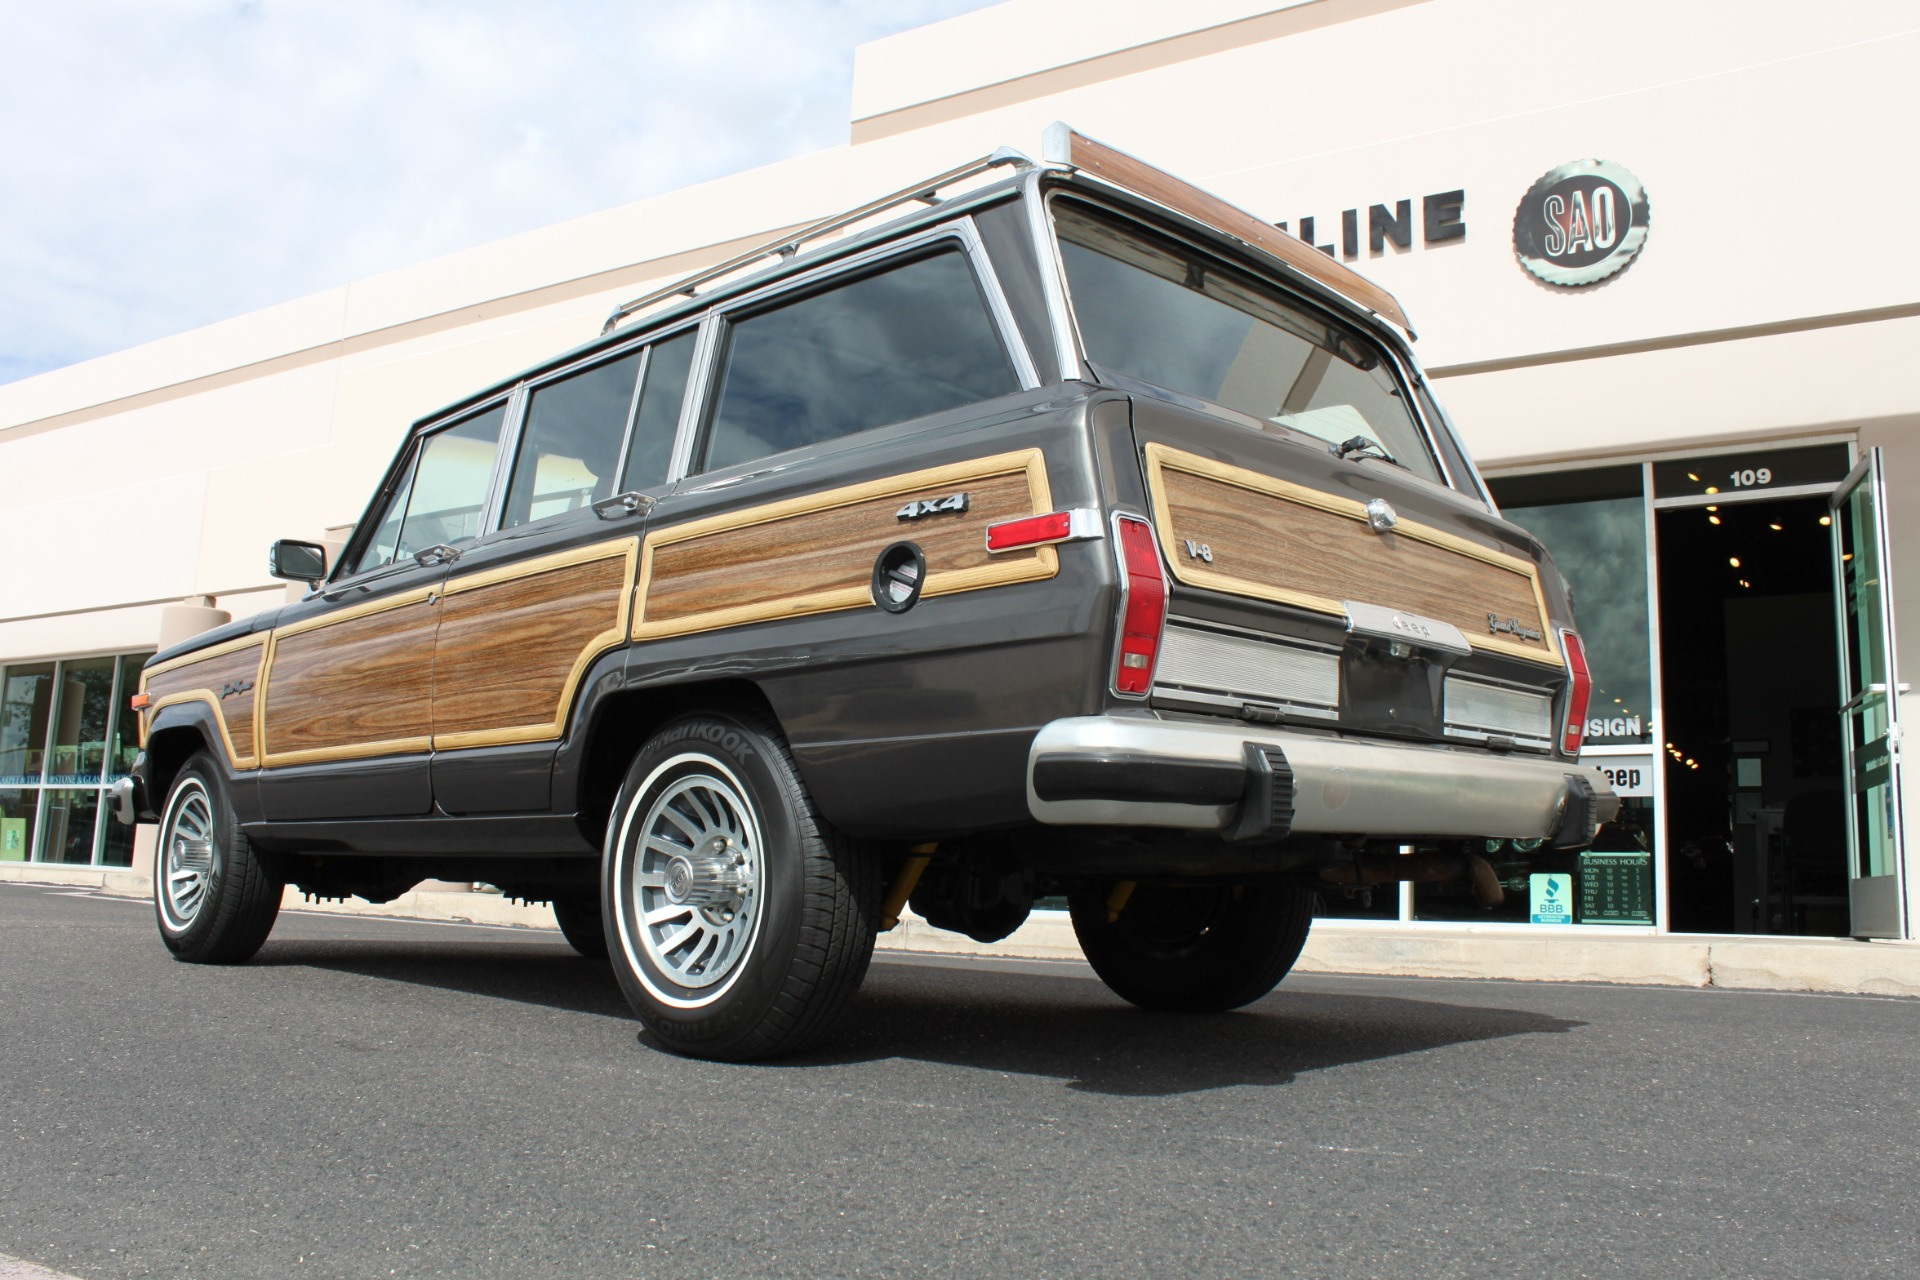 Used-1989-Jeep-Grand-Wagoneer-4X4-Jaguar